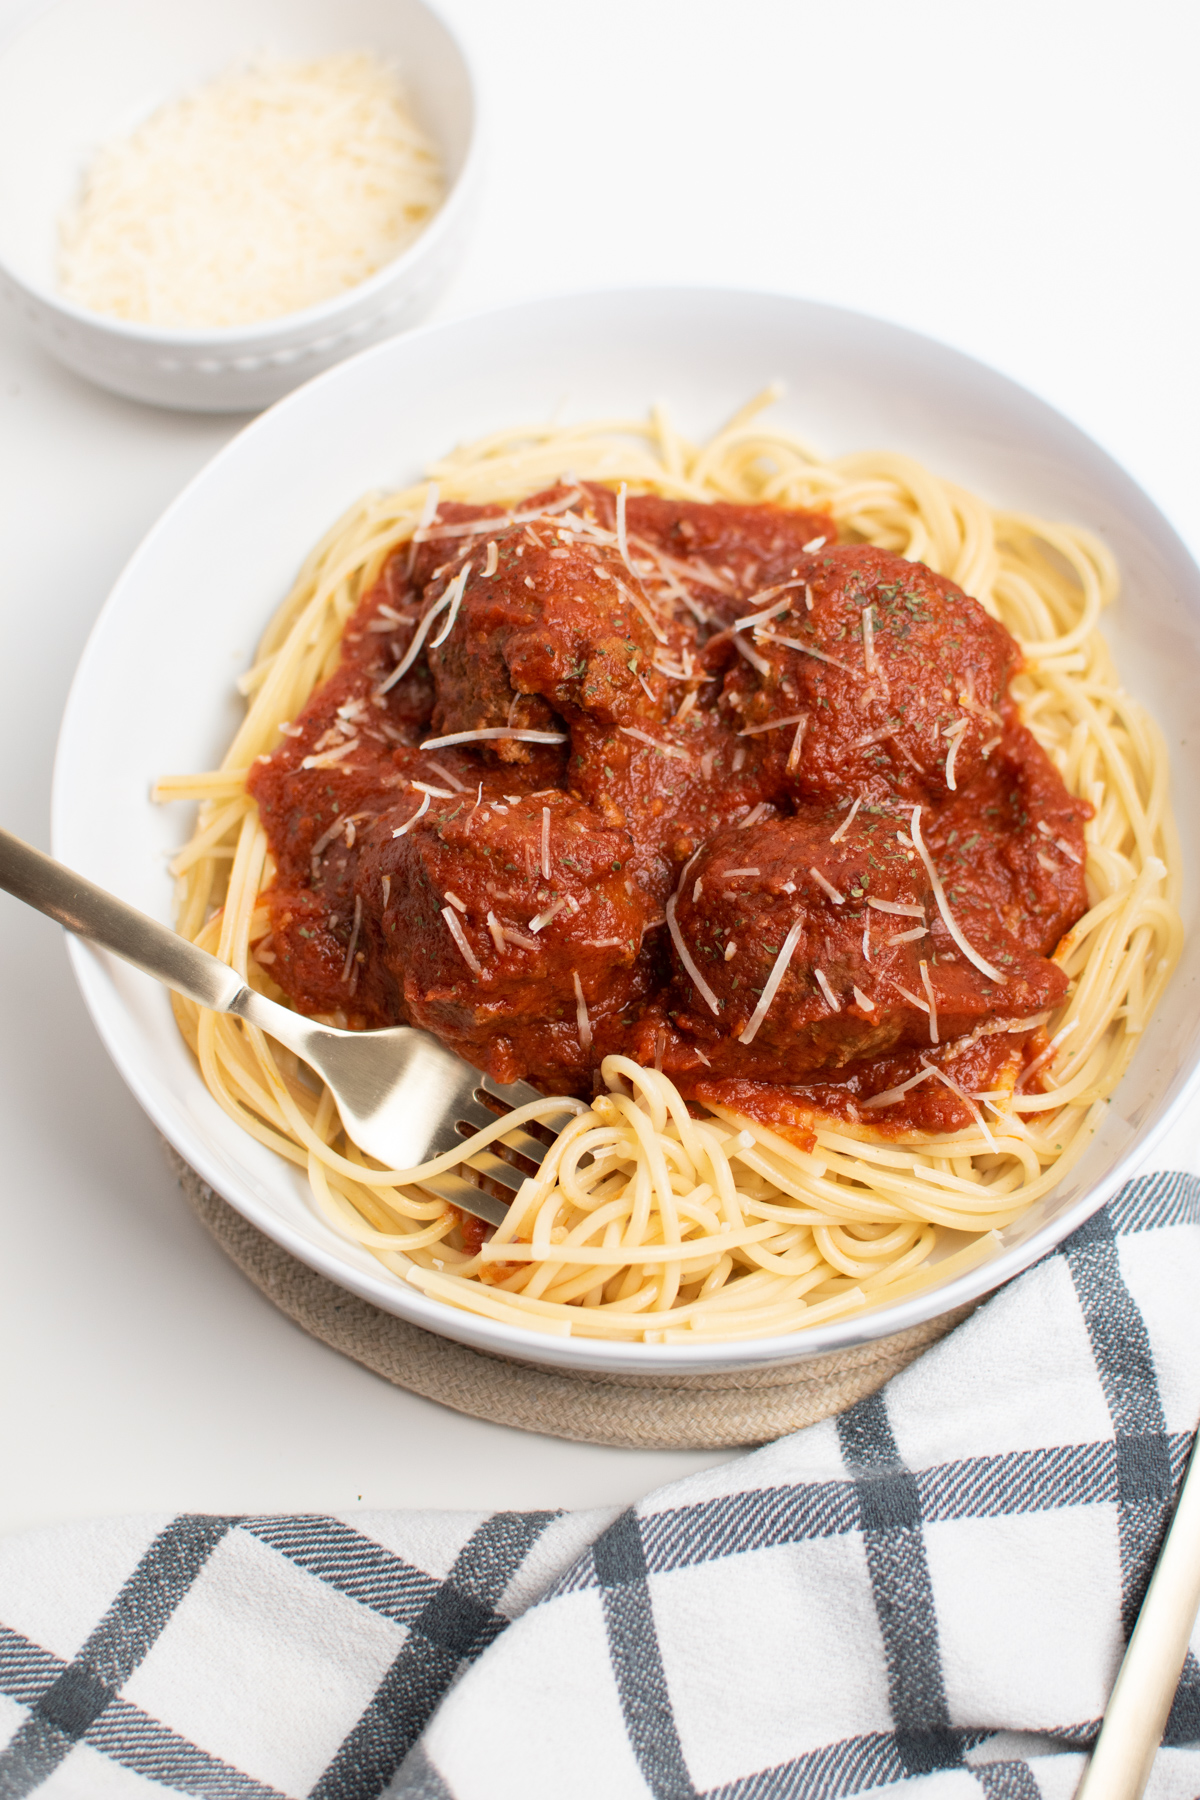 Fork in bowl with Italian spaghetti and meatballs on white table.